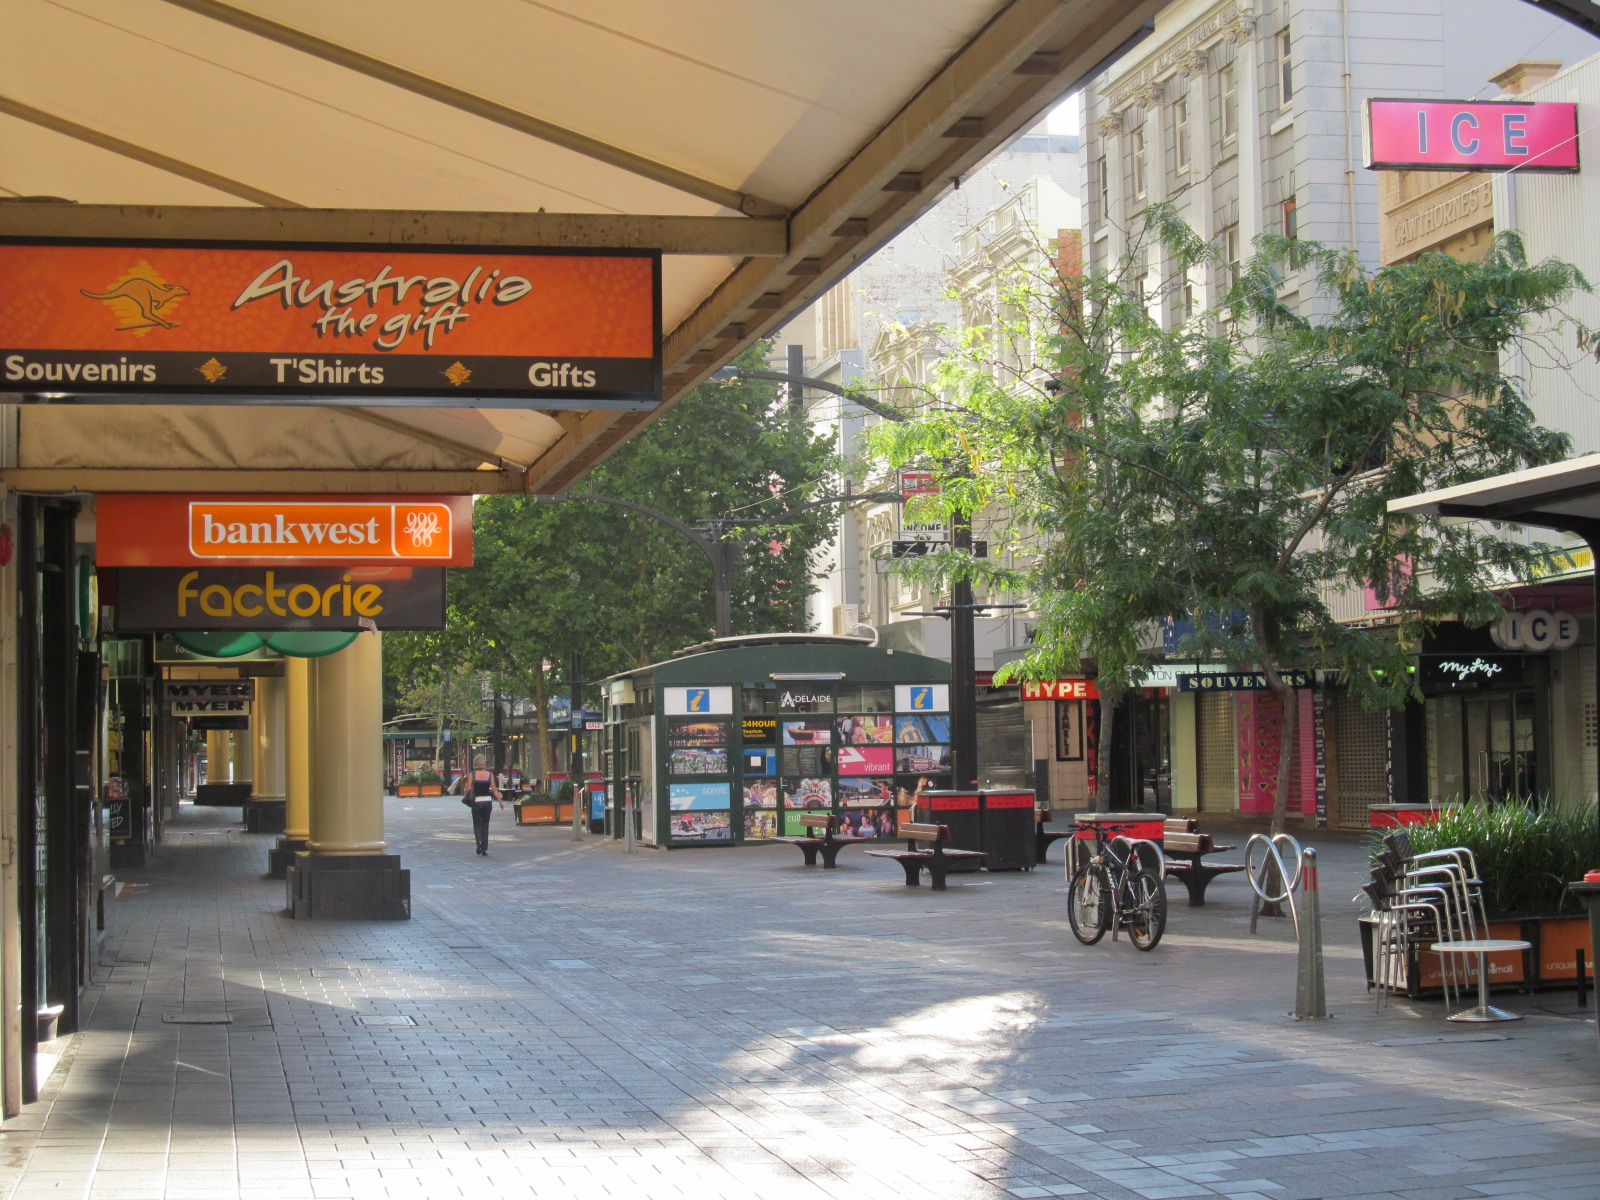 Rundle Mall in the morning light, Adelaide's main shopping strip, with Adelaide Free WiFi internet available